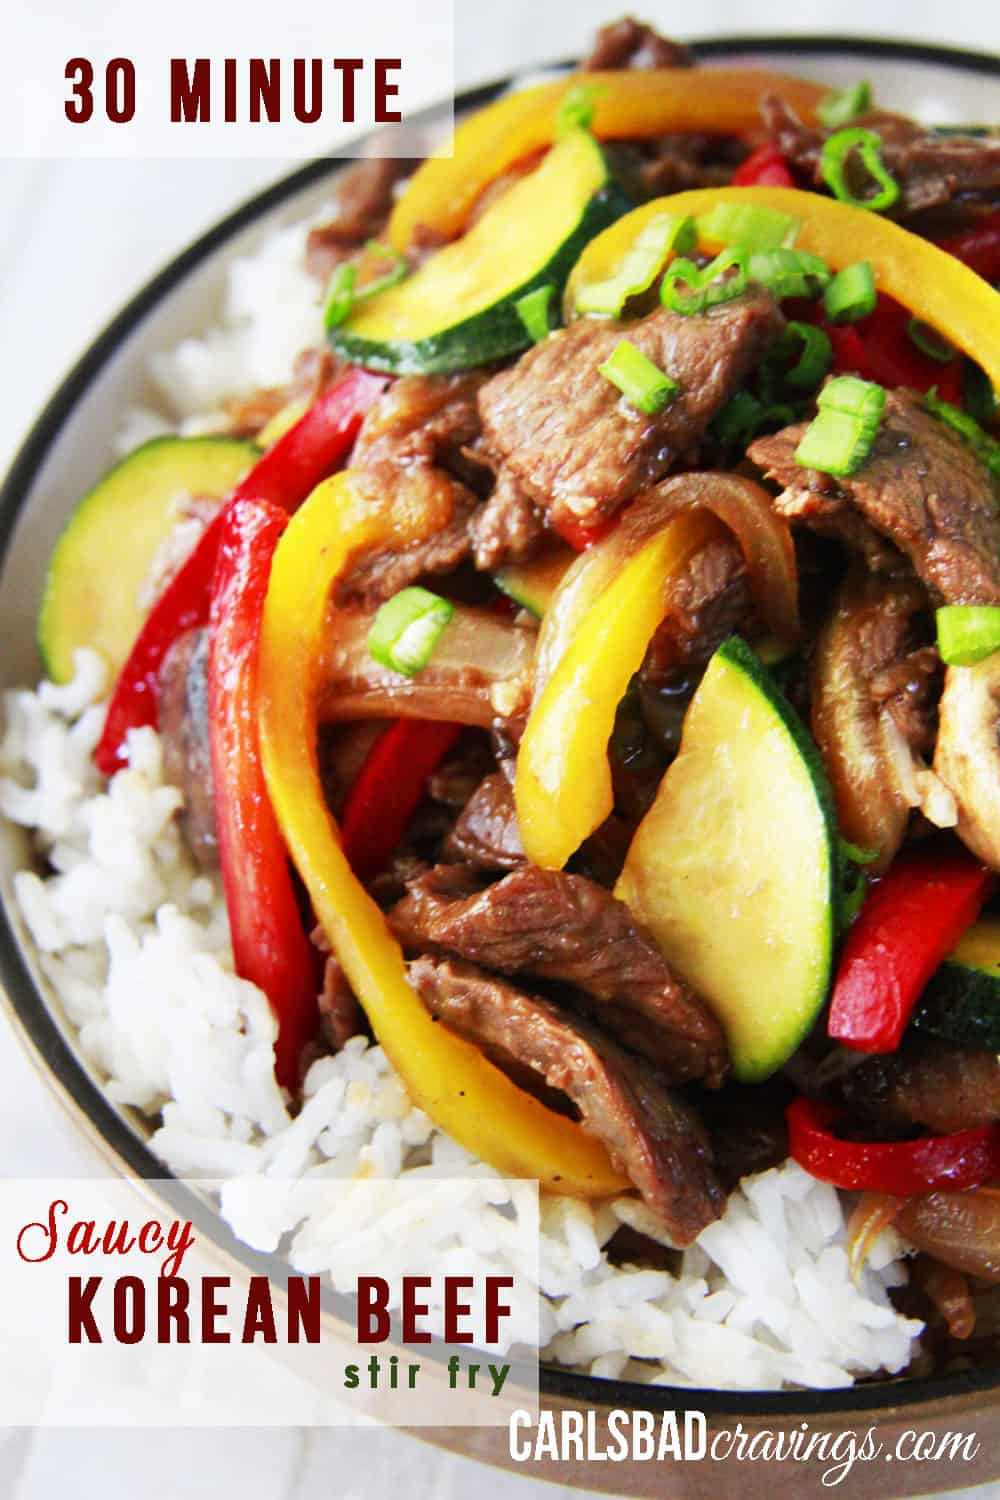 30 Minute Saucy Korean Beef Stir Fry - Carlsbad Cravings